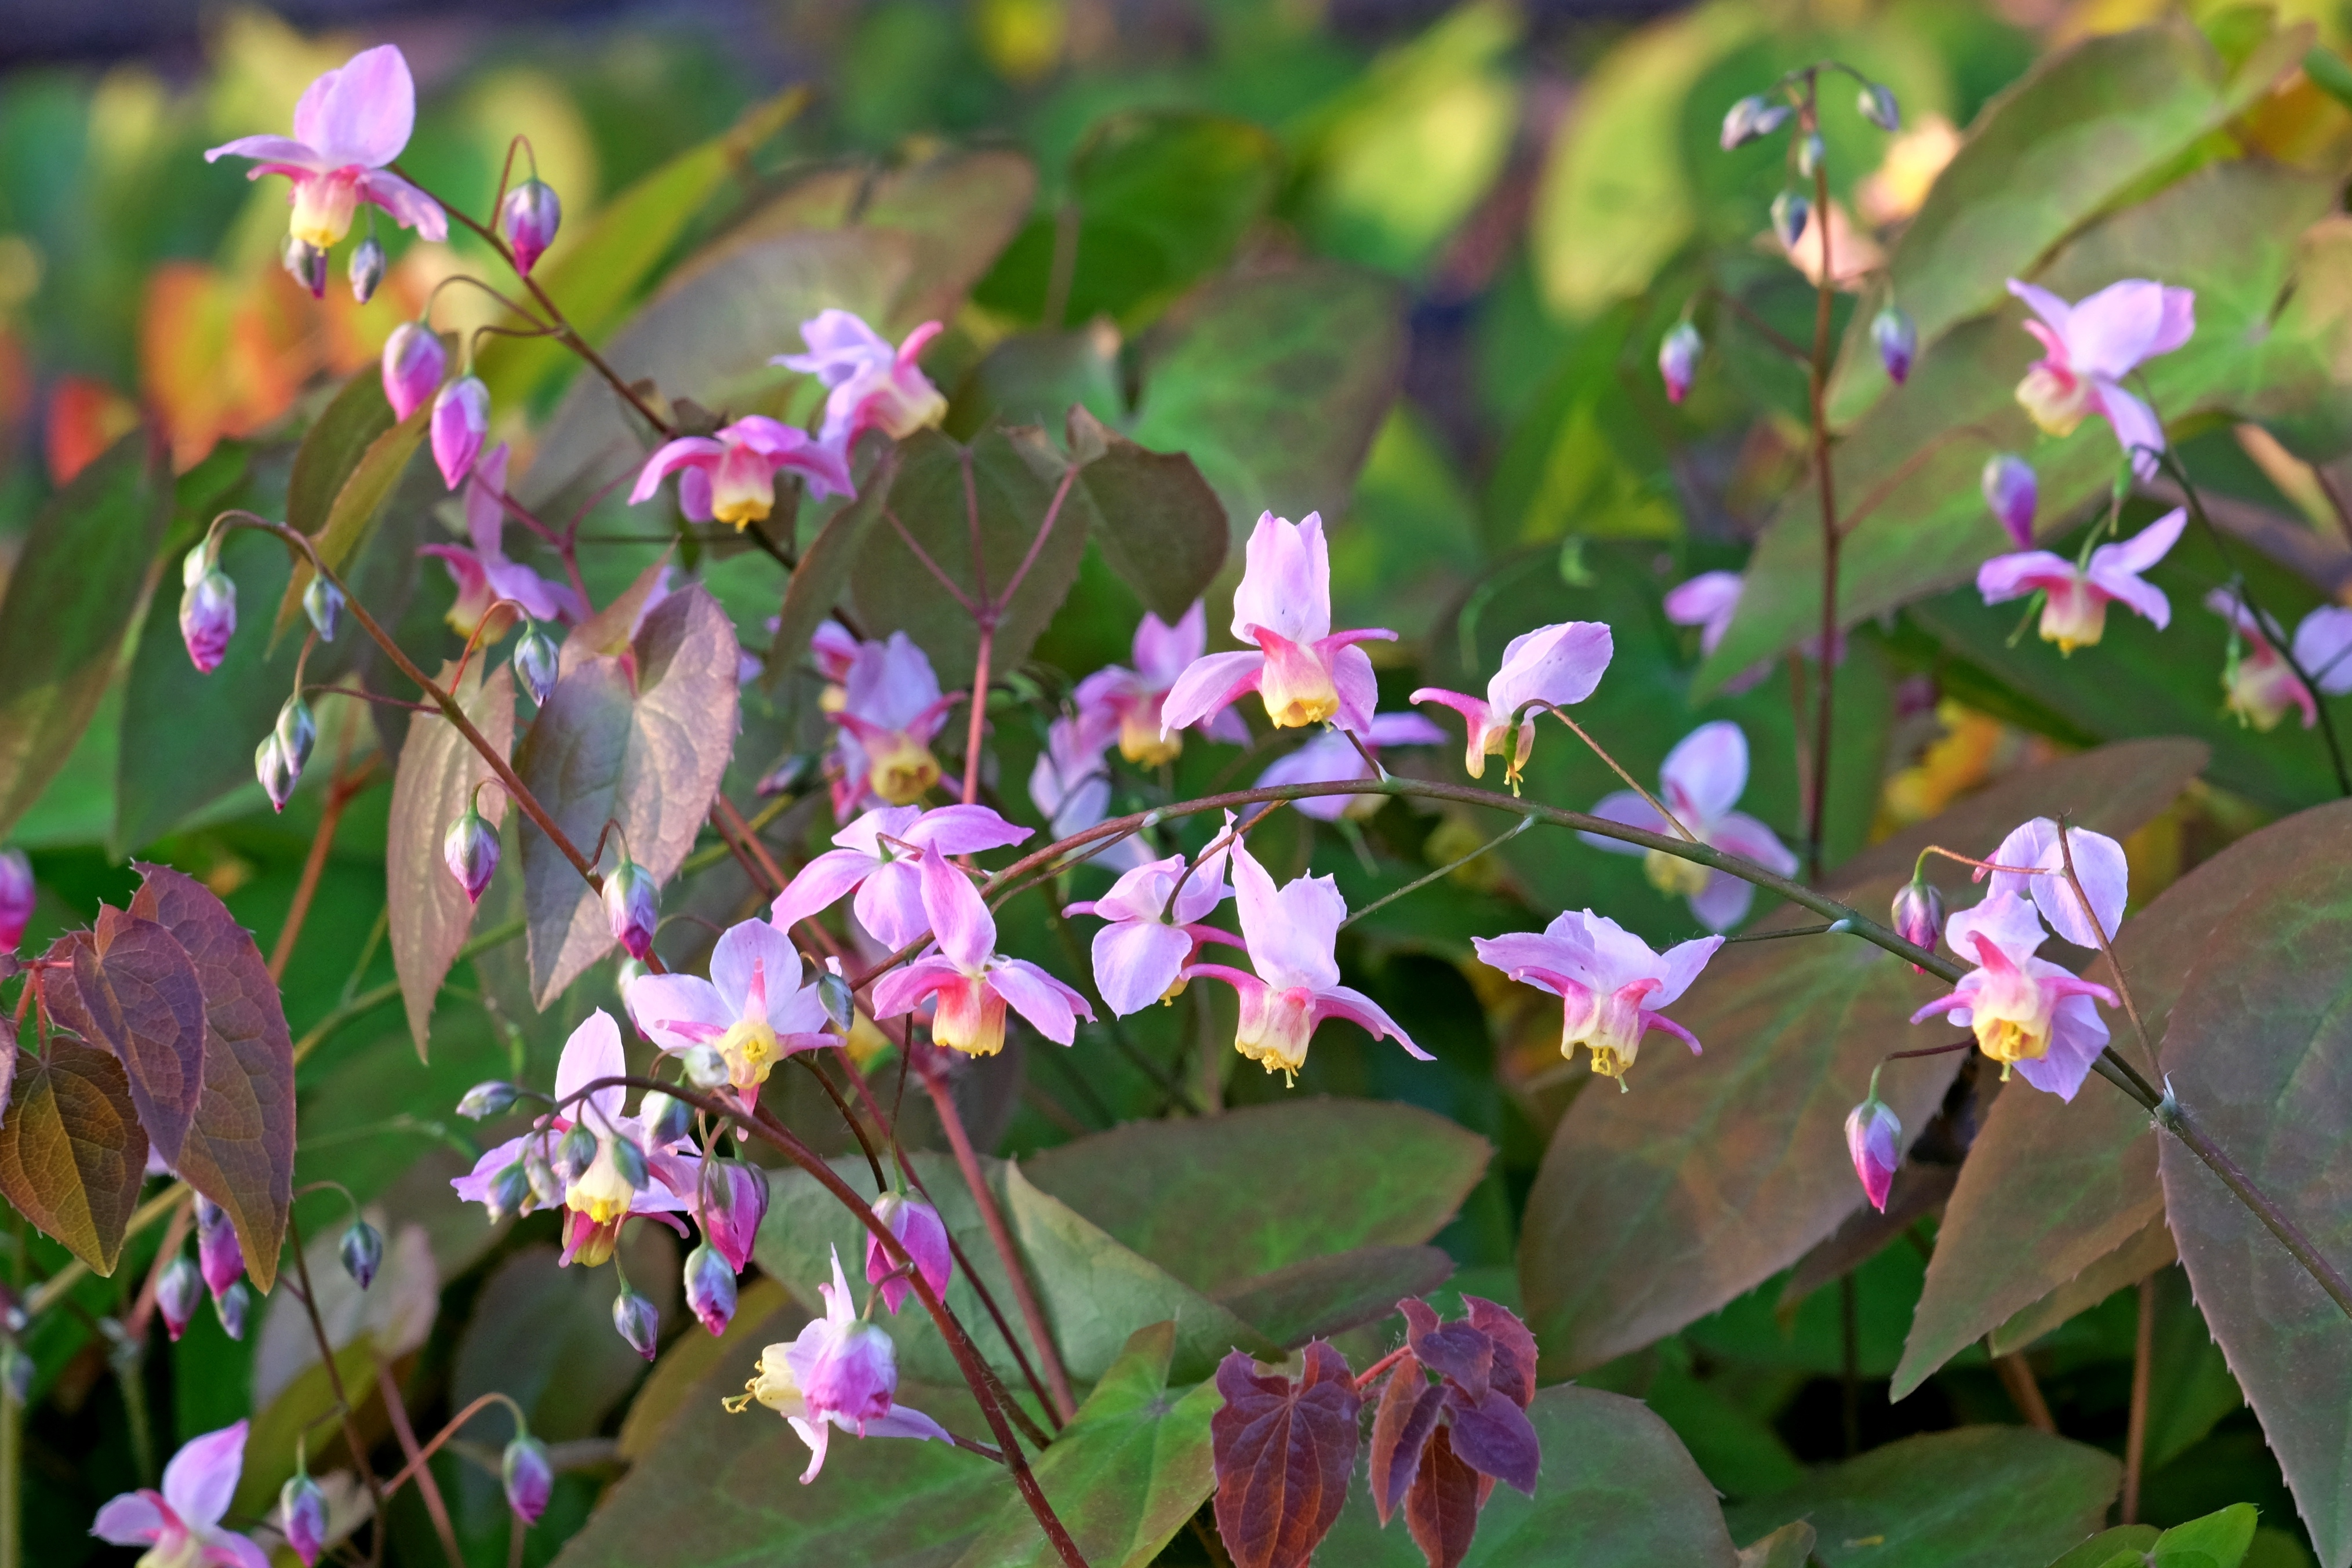 Epimedium x versicolor 'Cherry Tart' @ JLBG - a 1999 Cobblewood introduction of a chance seedling from the garden of Judy Springer; semi-evergreen